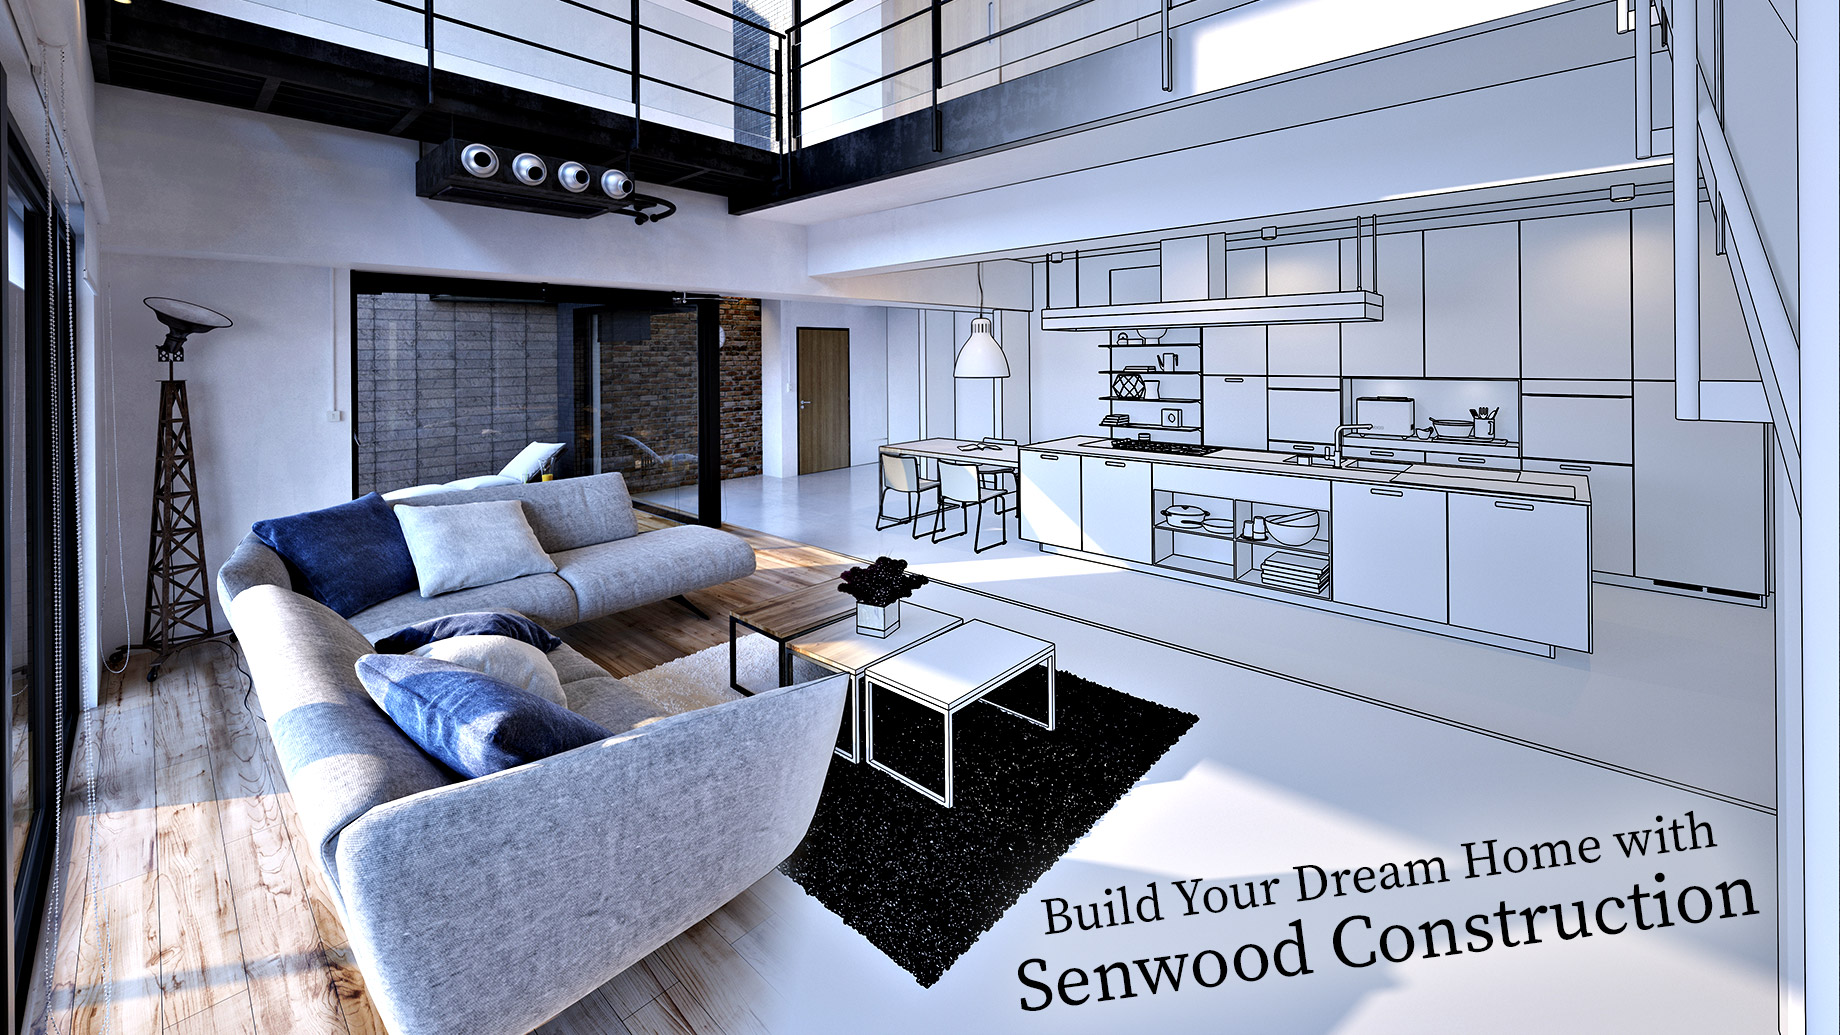 Build Your Dream Home with Senwood Construction